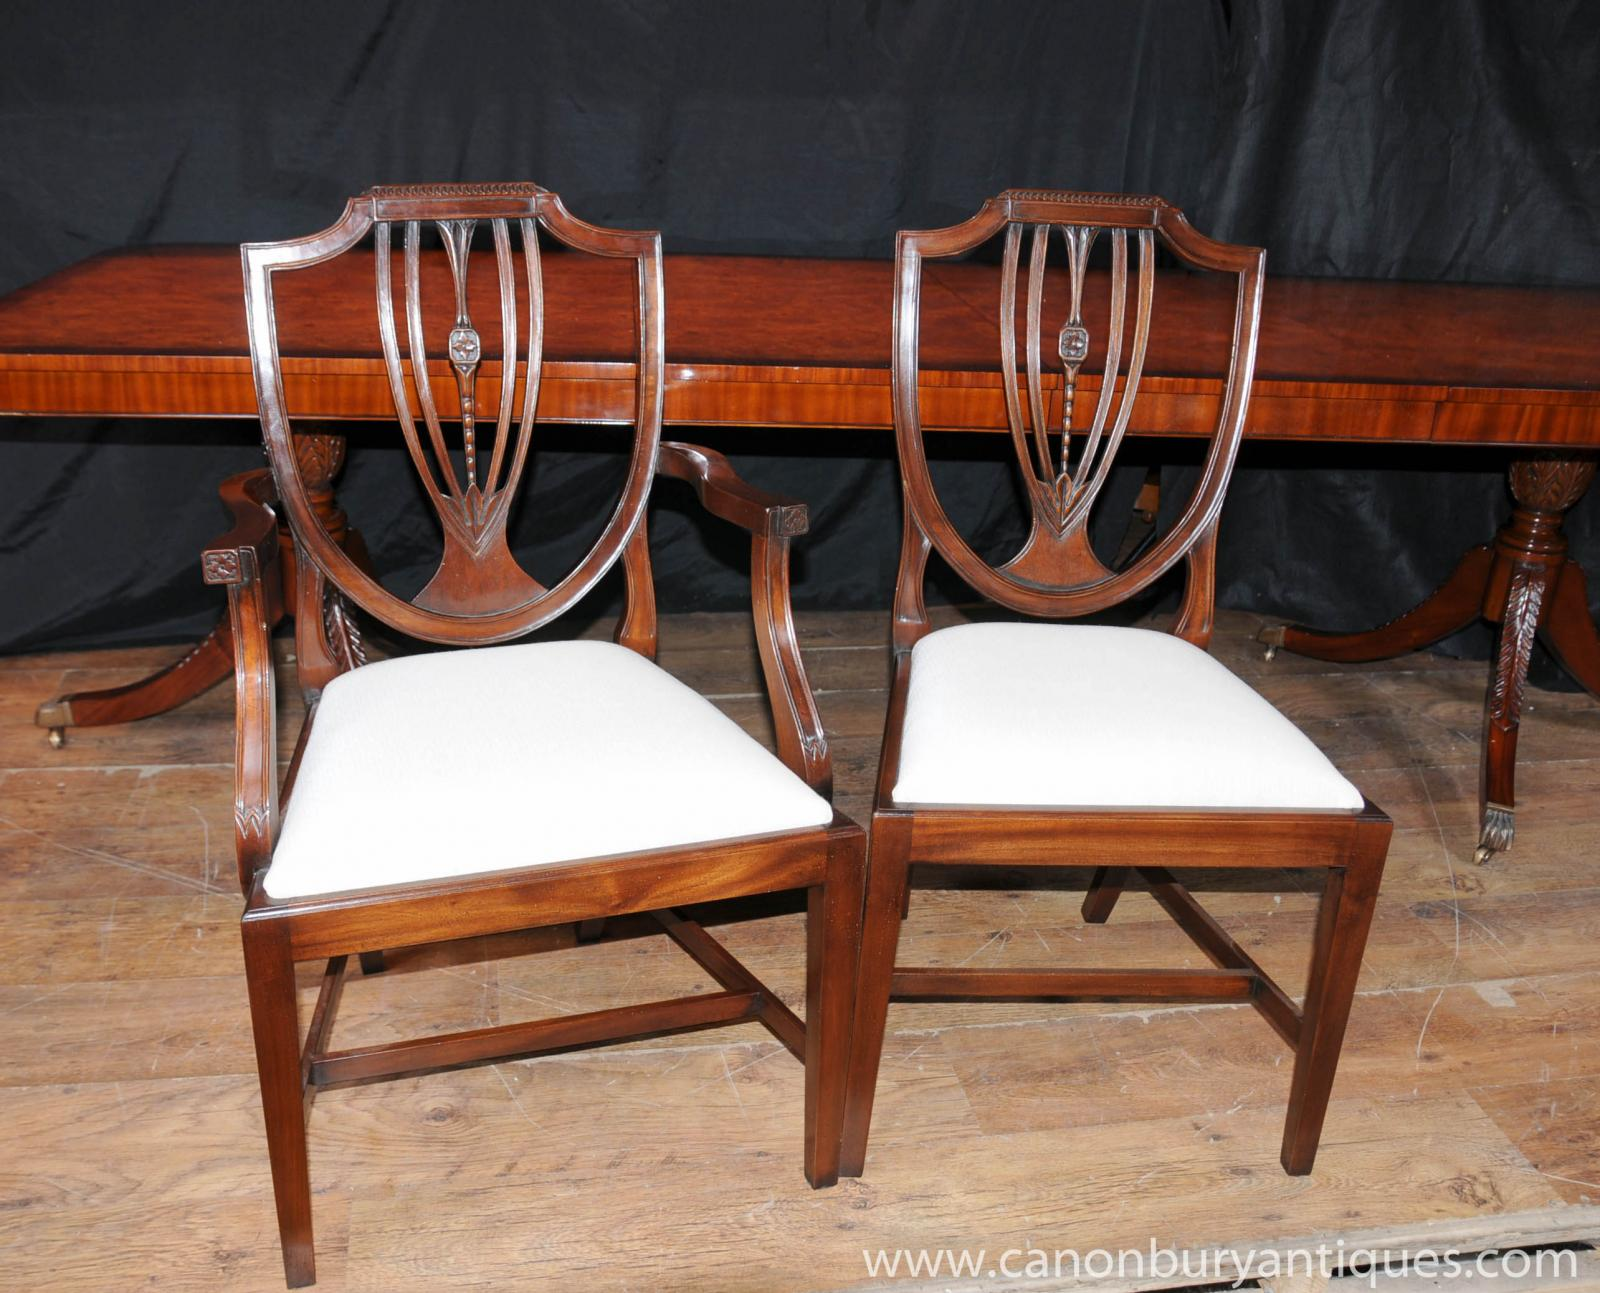 Antique regency dining chairs - Antique Regency Dining Chairs 57